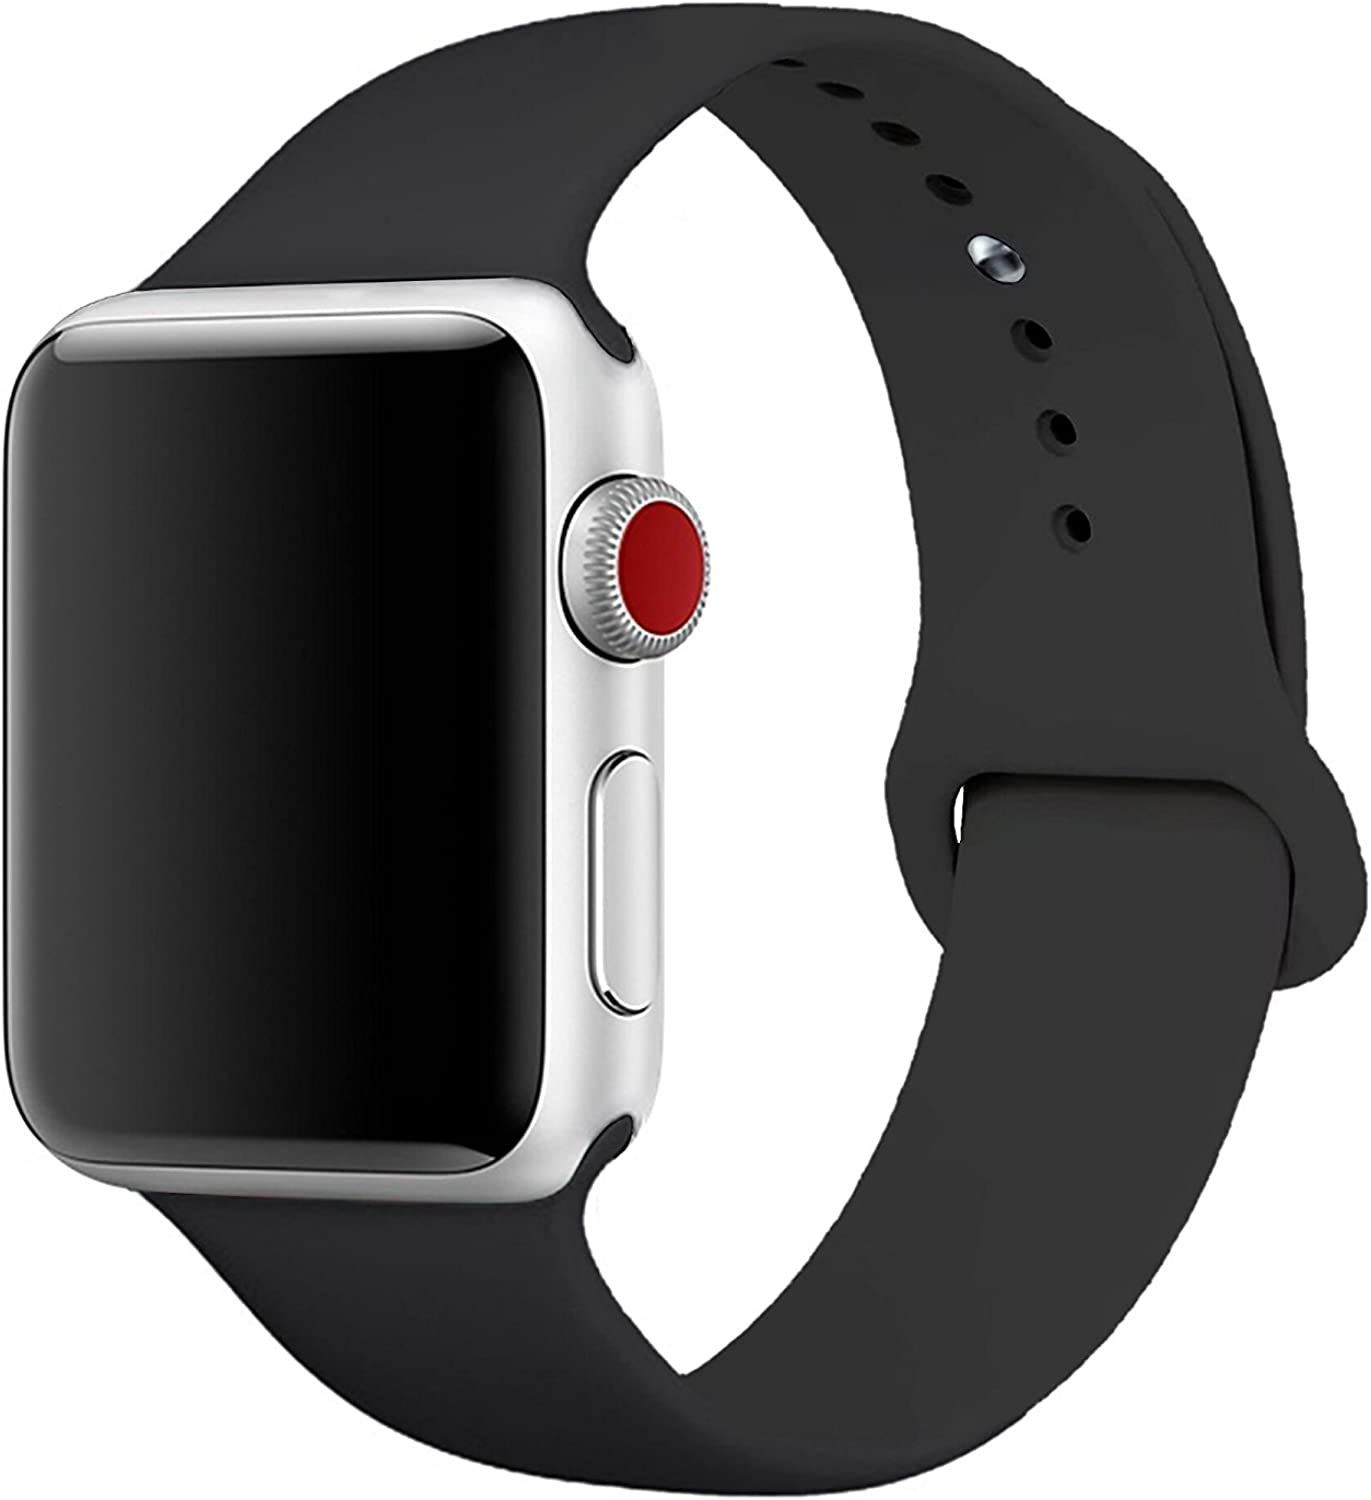 Aimote Sport Band for iWatch 38mm 42mm 40mm 44mm, Soft Silicone Strap Replacement for Watch Series 5 4 /3/2/1 Nike+ Sport Edition, S/M M/L Size, 38/40/42/44mm for men women